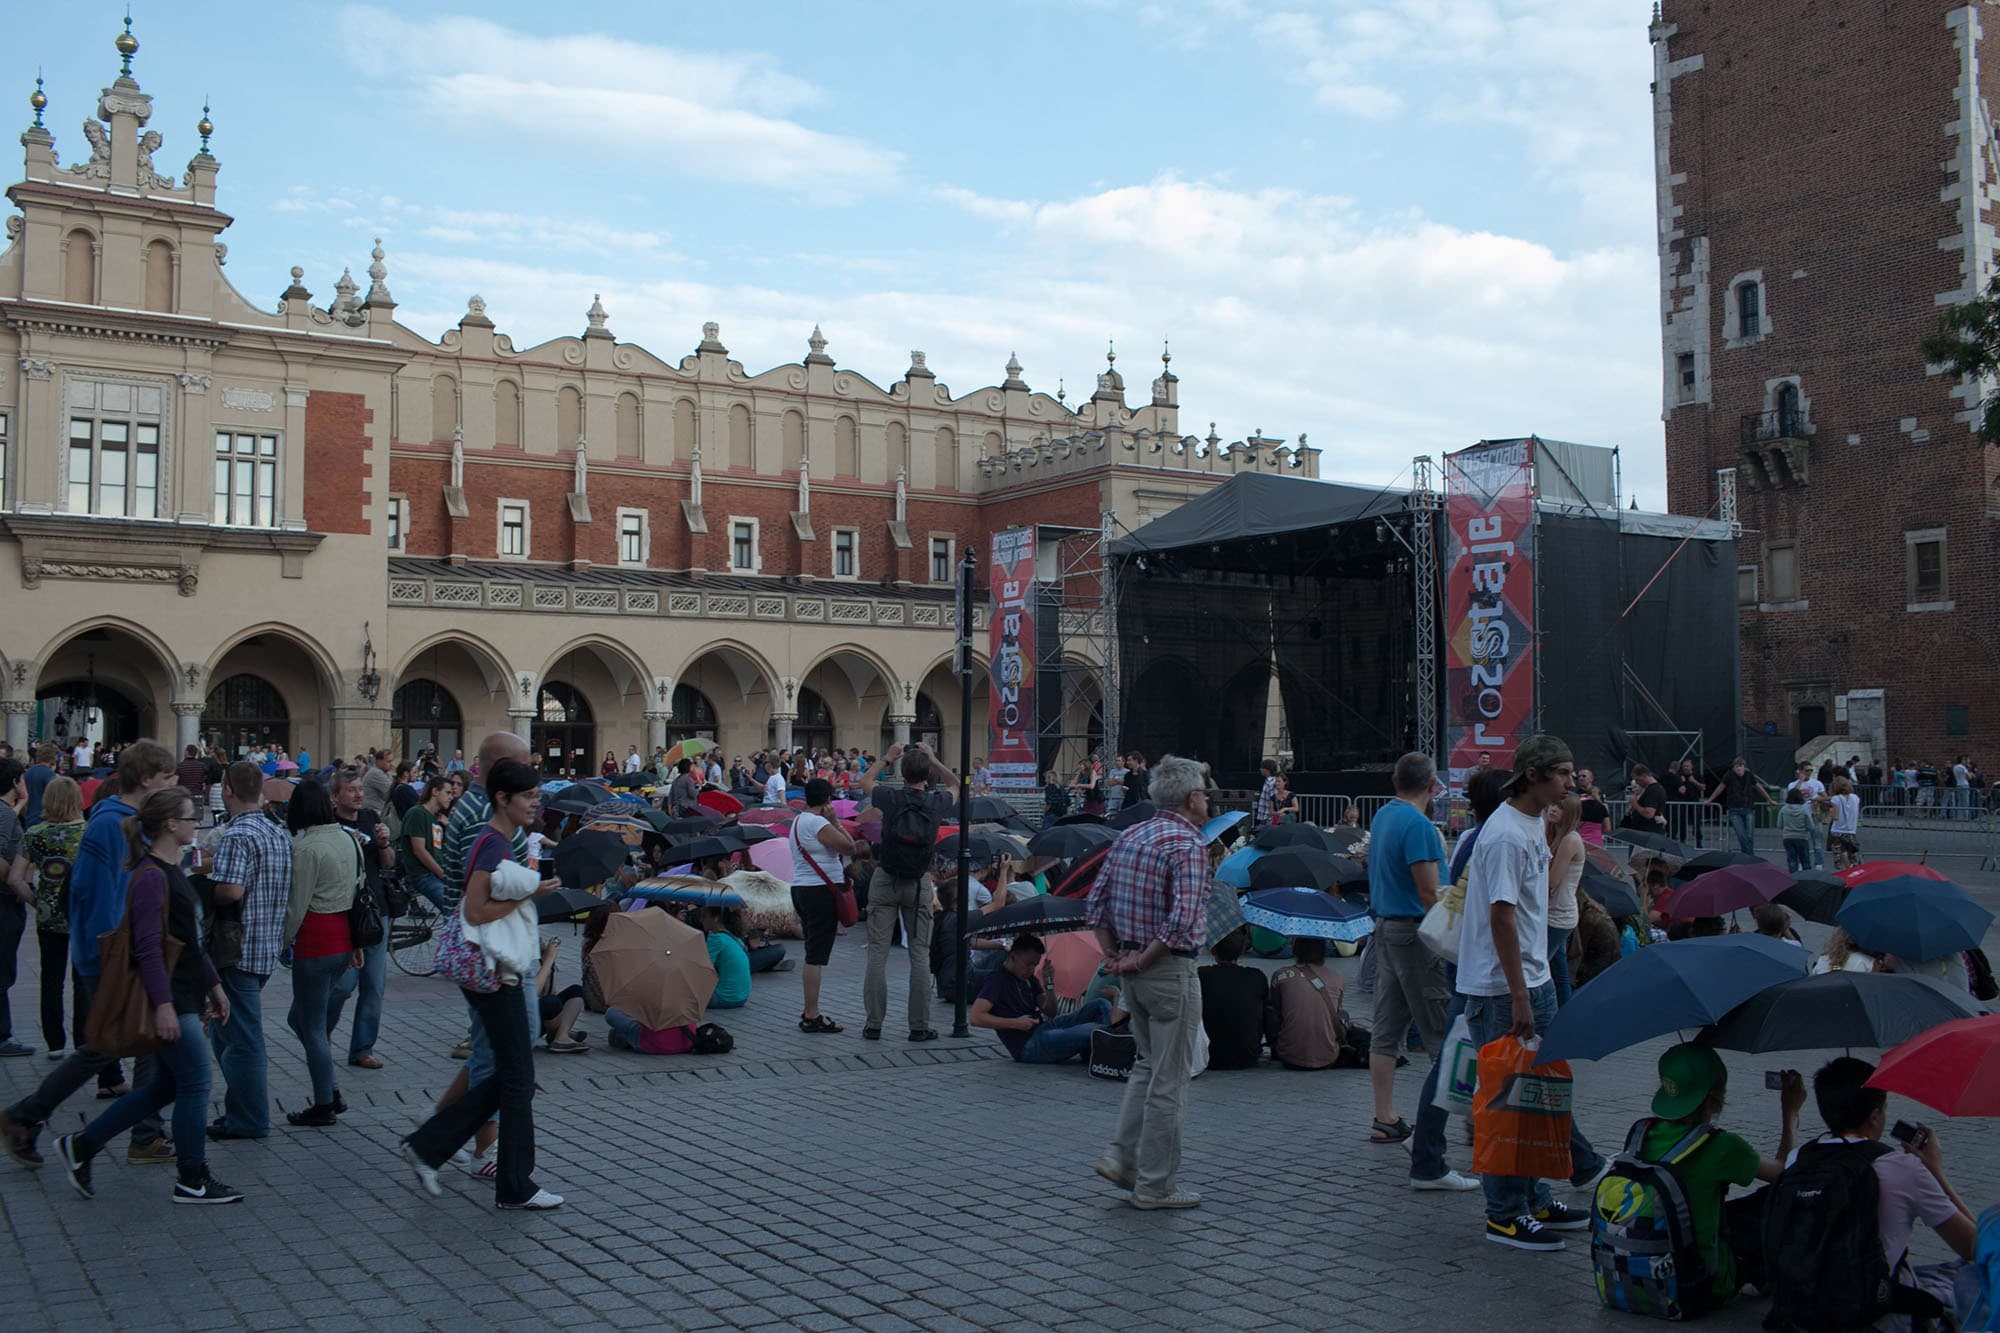 Flash mob in Krakow, Poland.